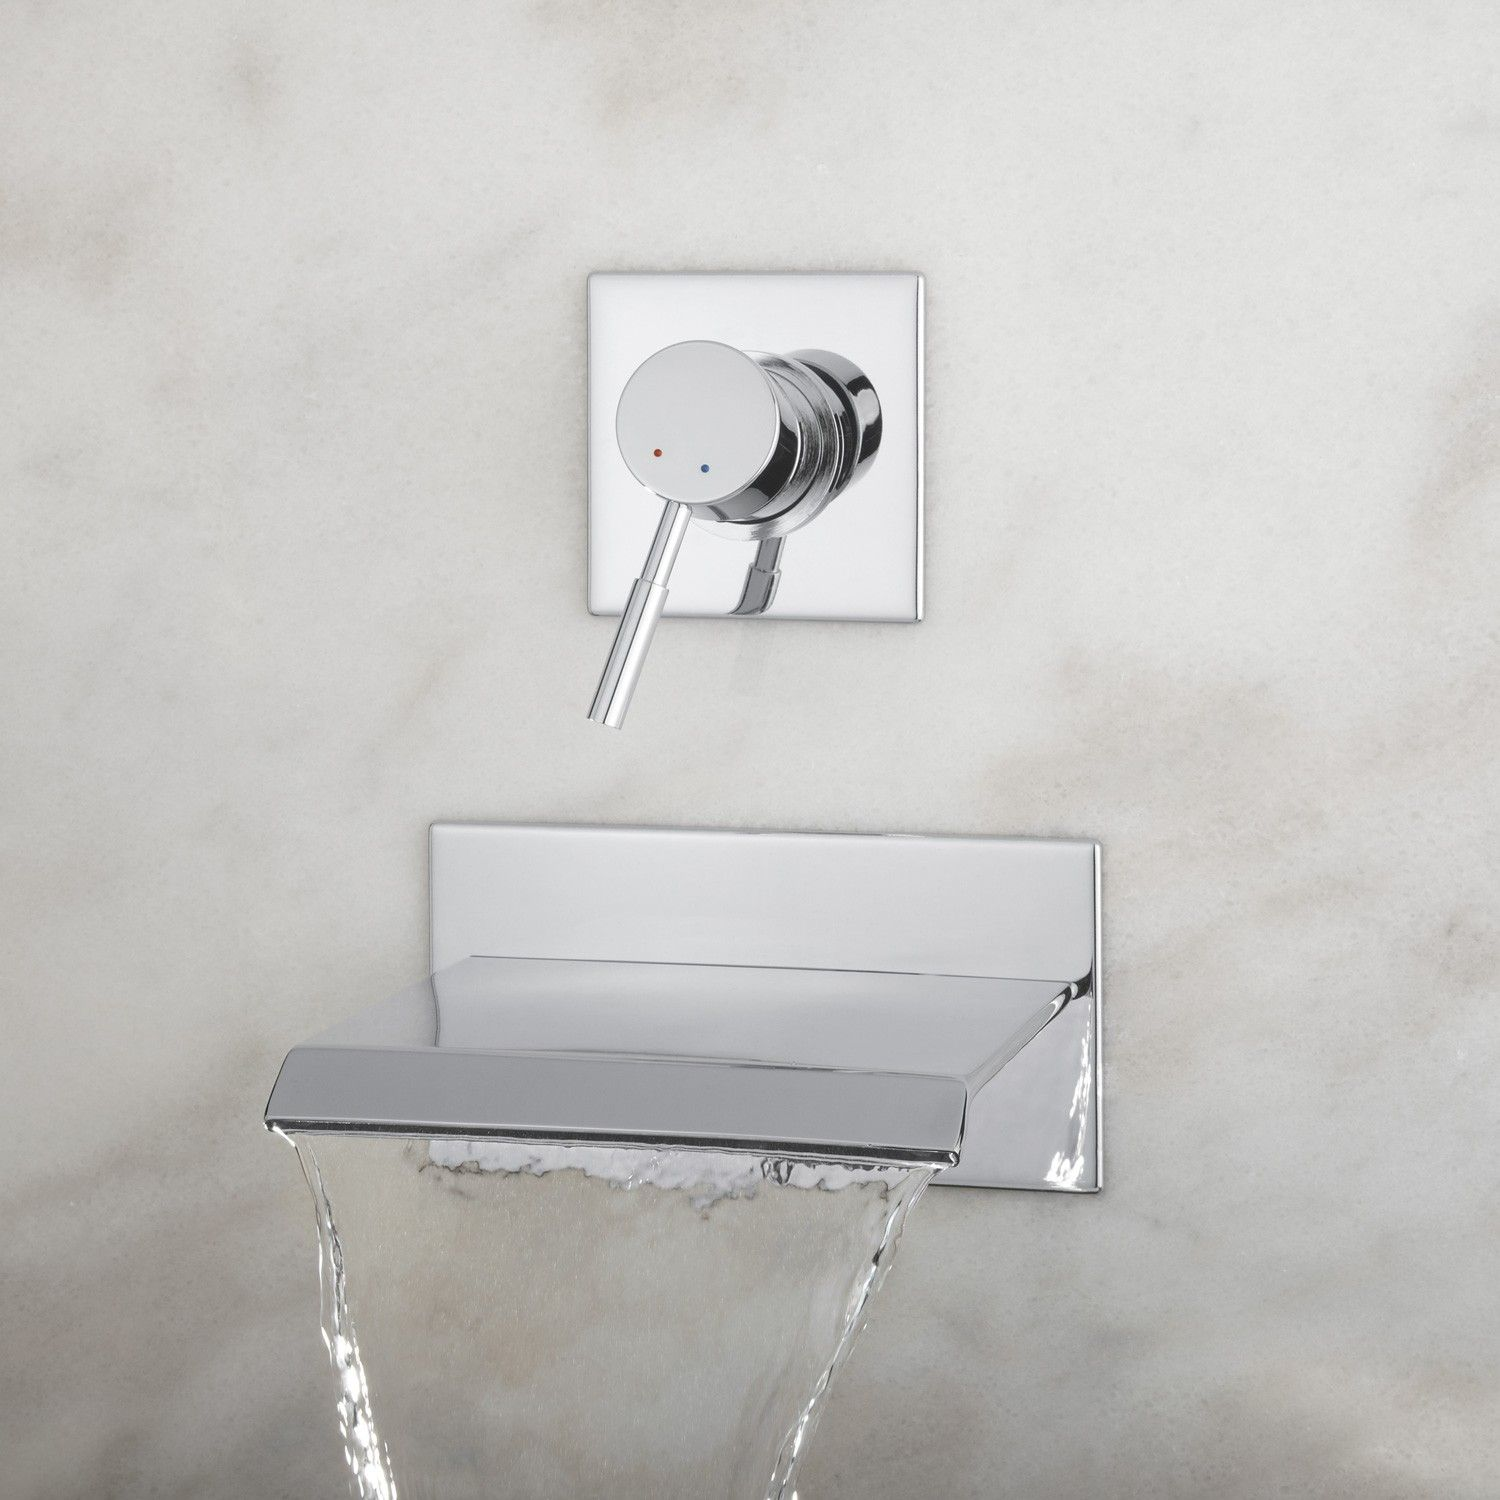 Wall mount faucet bathroom - Lavelle Wall Mount Waterfall Tub Faucet